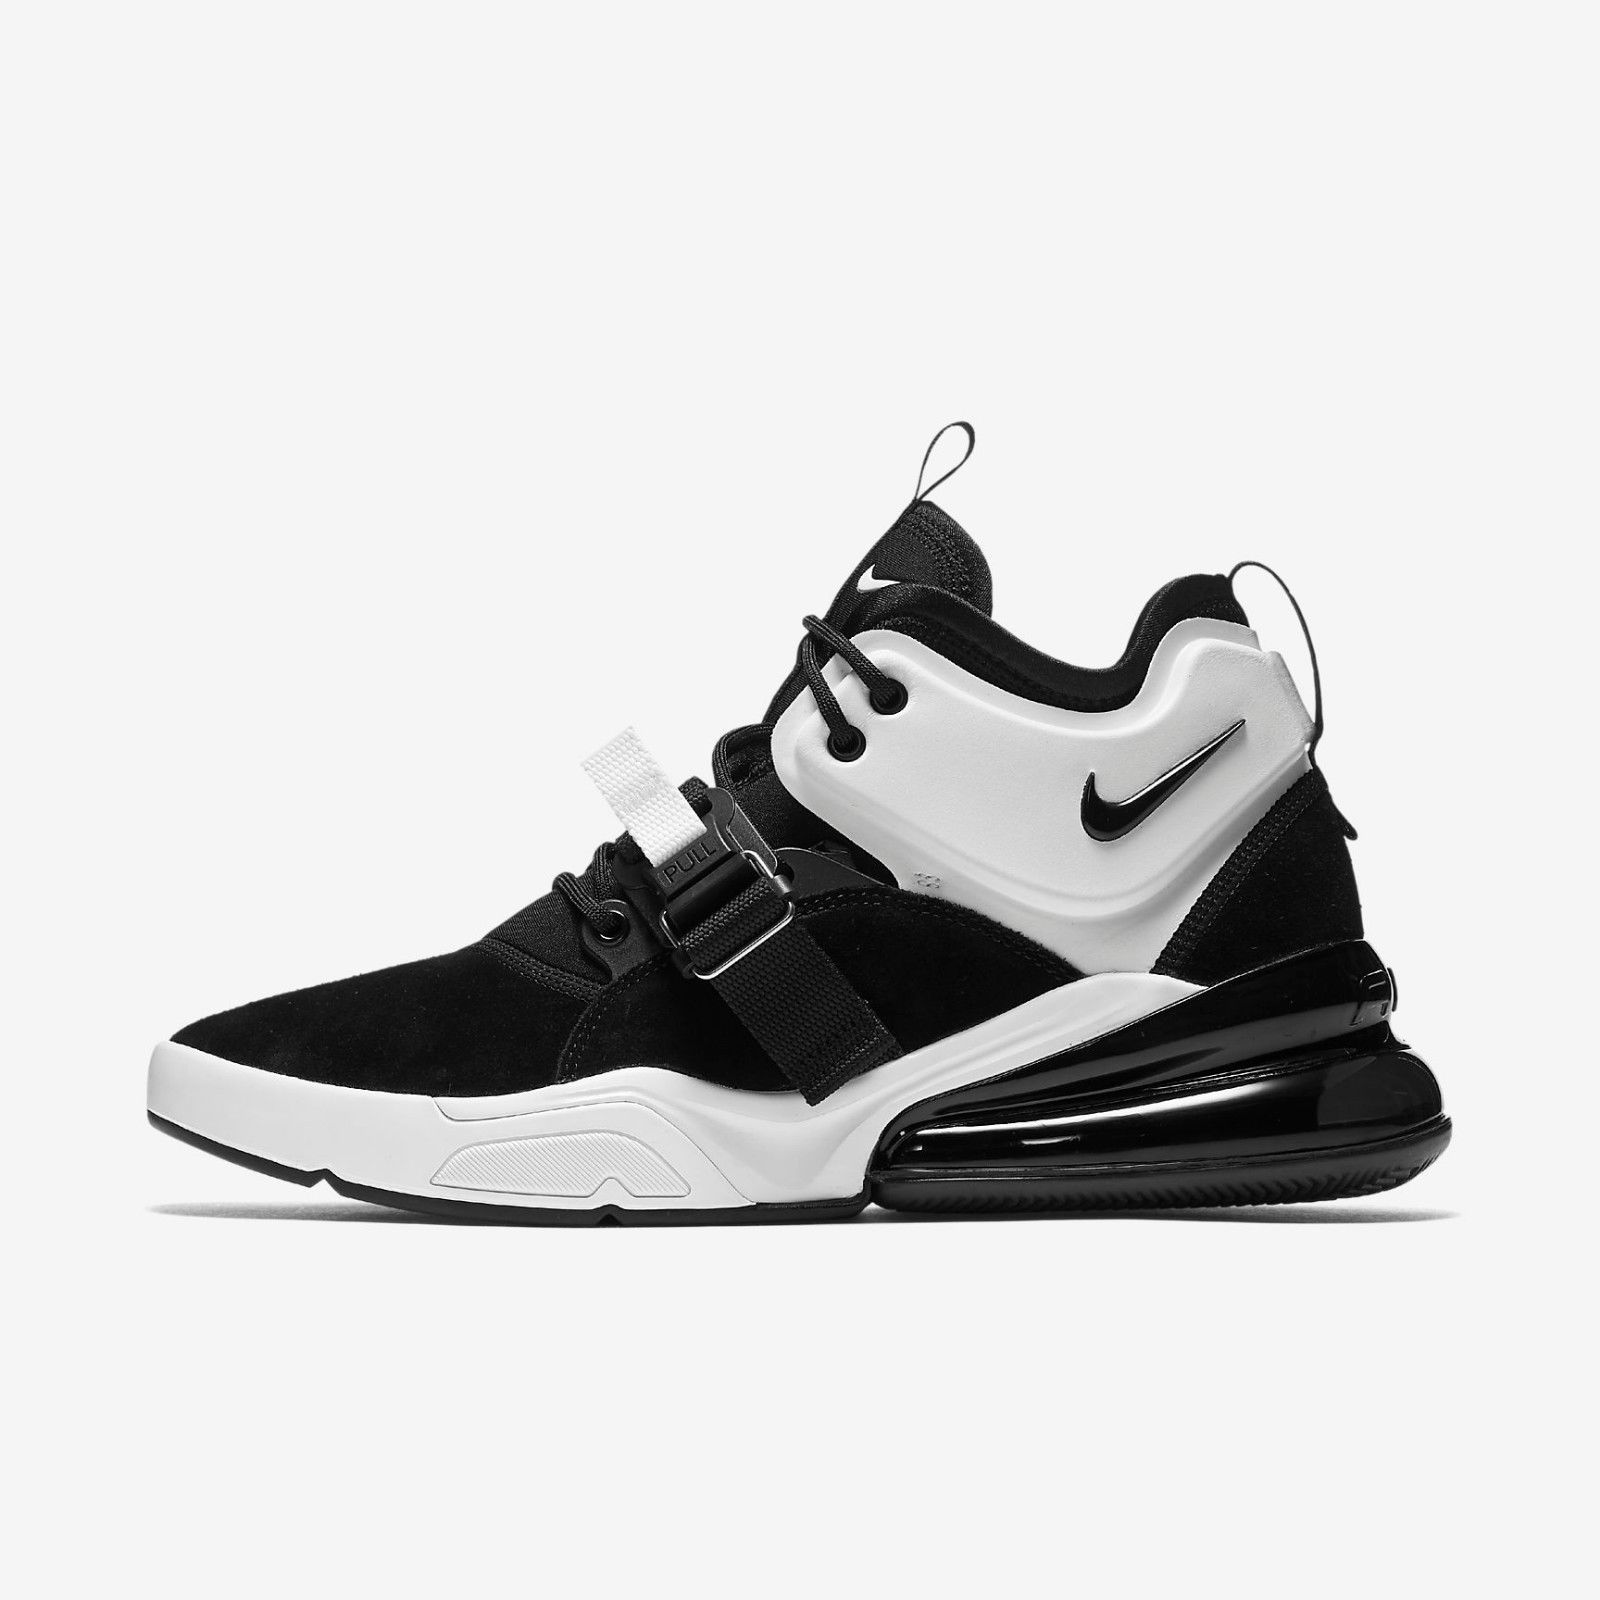 faada105565 Men's Authentic Air Force 270 Shoes Size 12 and 50 similar items. 57